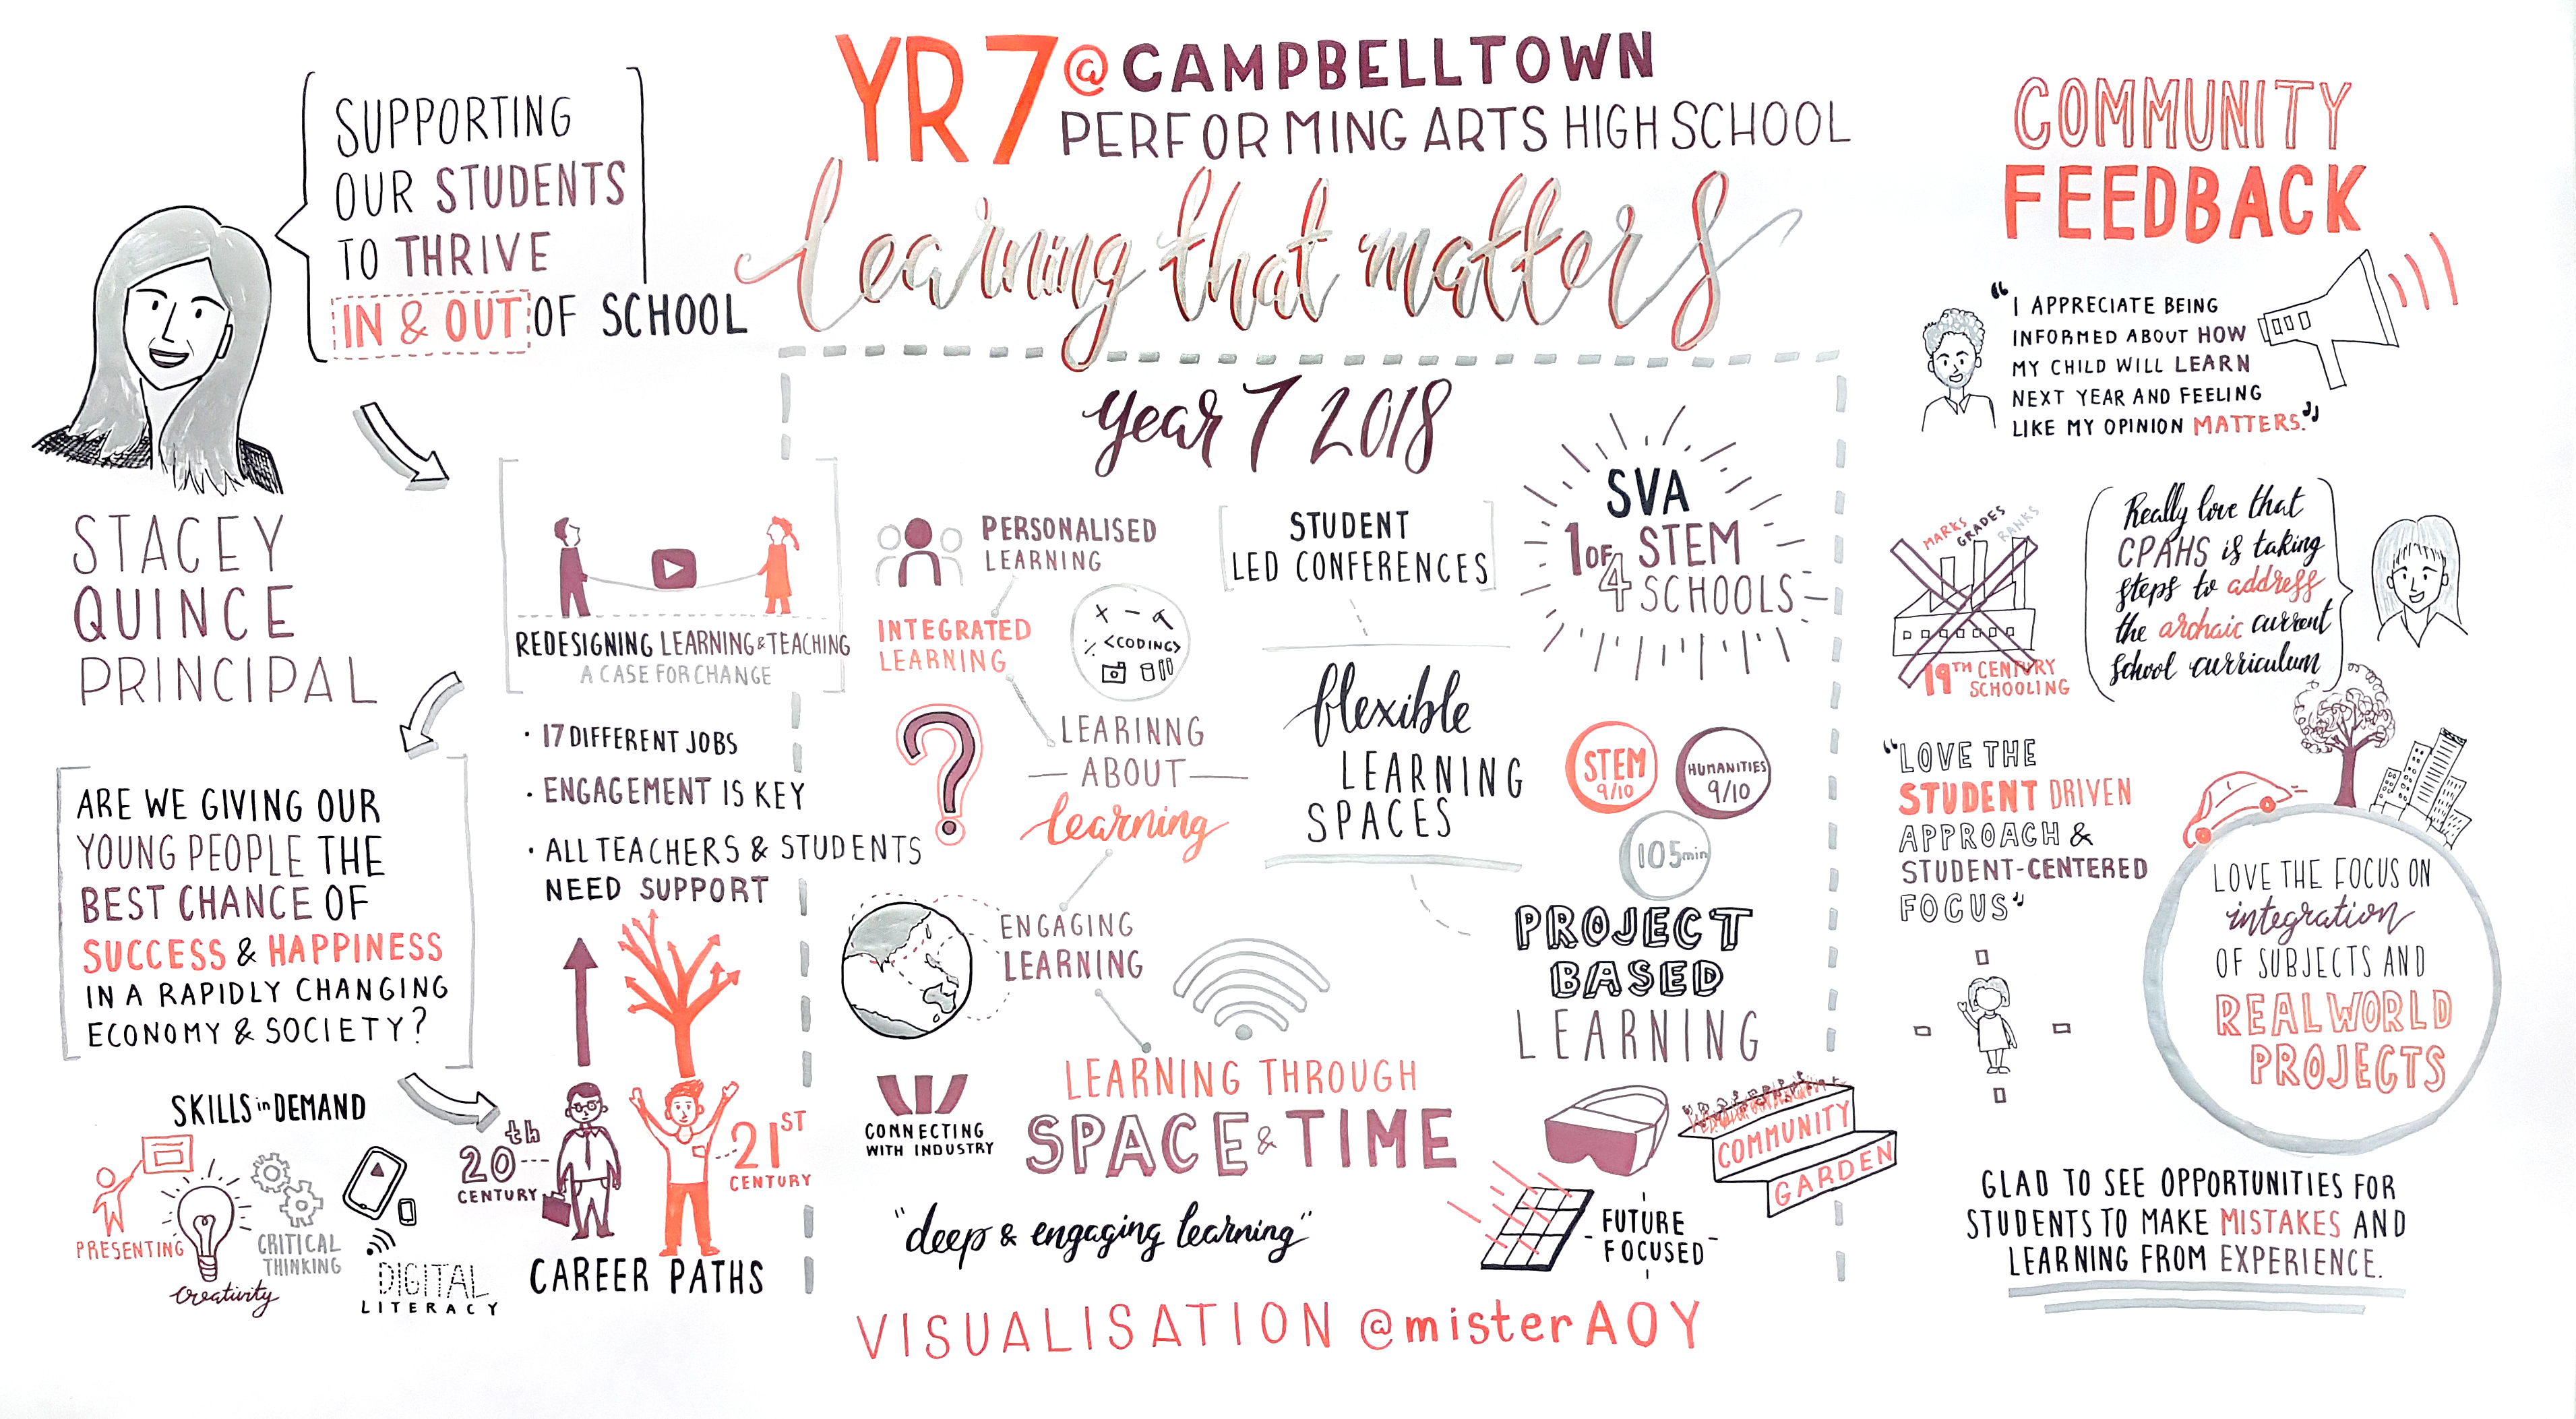 Visualisation of our most recent consultation with parents and community. Discussing a new revised and integrated curriculum for year 7 at Campbletown Performing Arts High School.